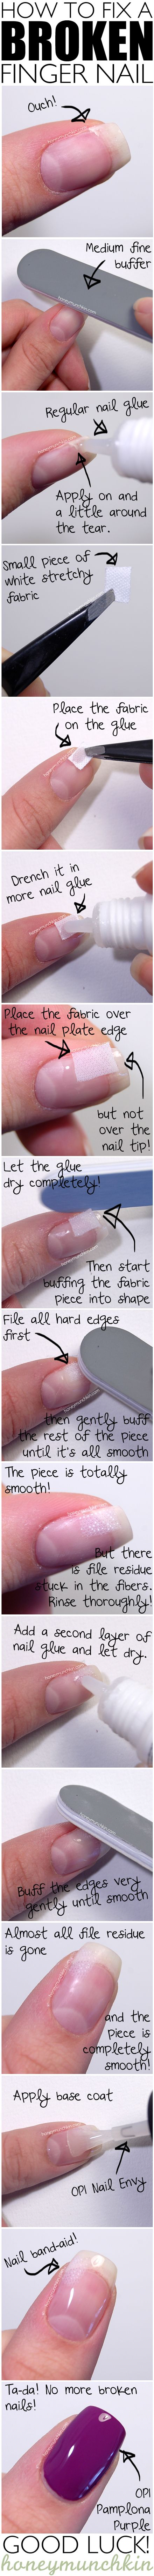 How to fix a broken finger nail - OK, it's not a tasty baked good, but I have used this method and it does work really well!  You can even file the nail after the polish is dry.